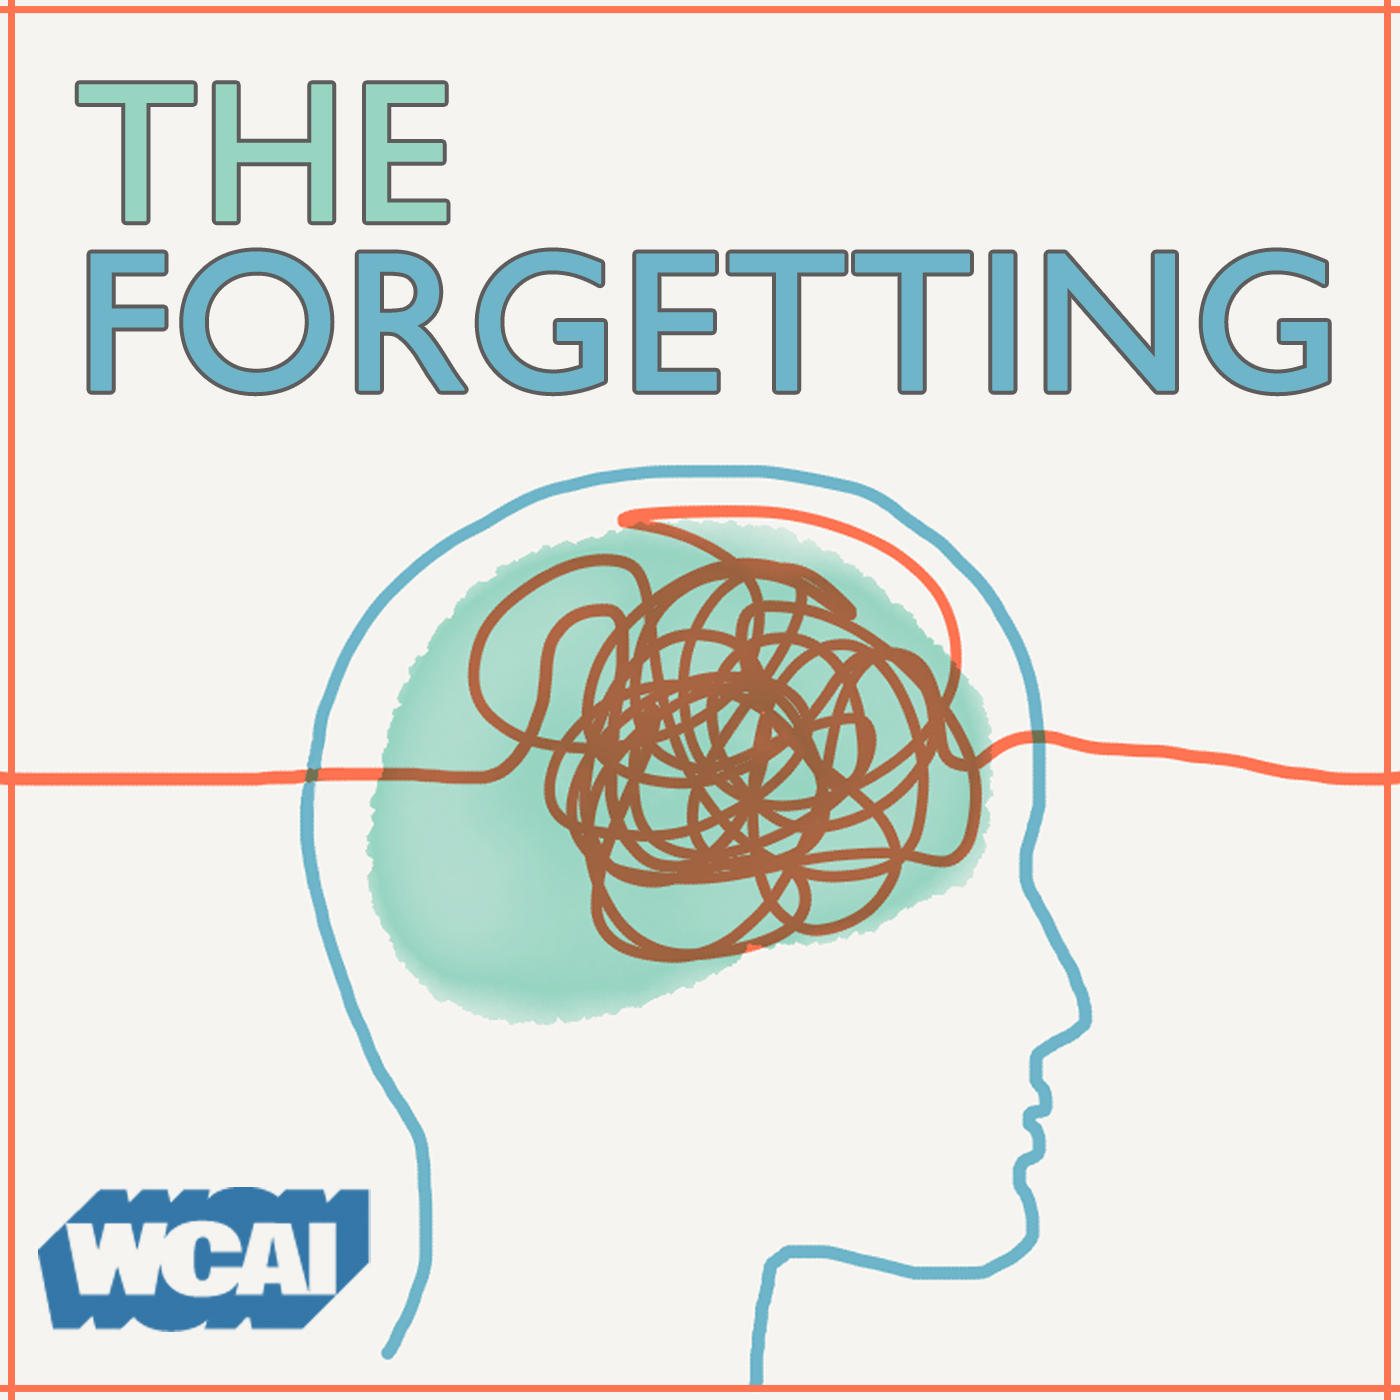 The Forgetting On WCAI